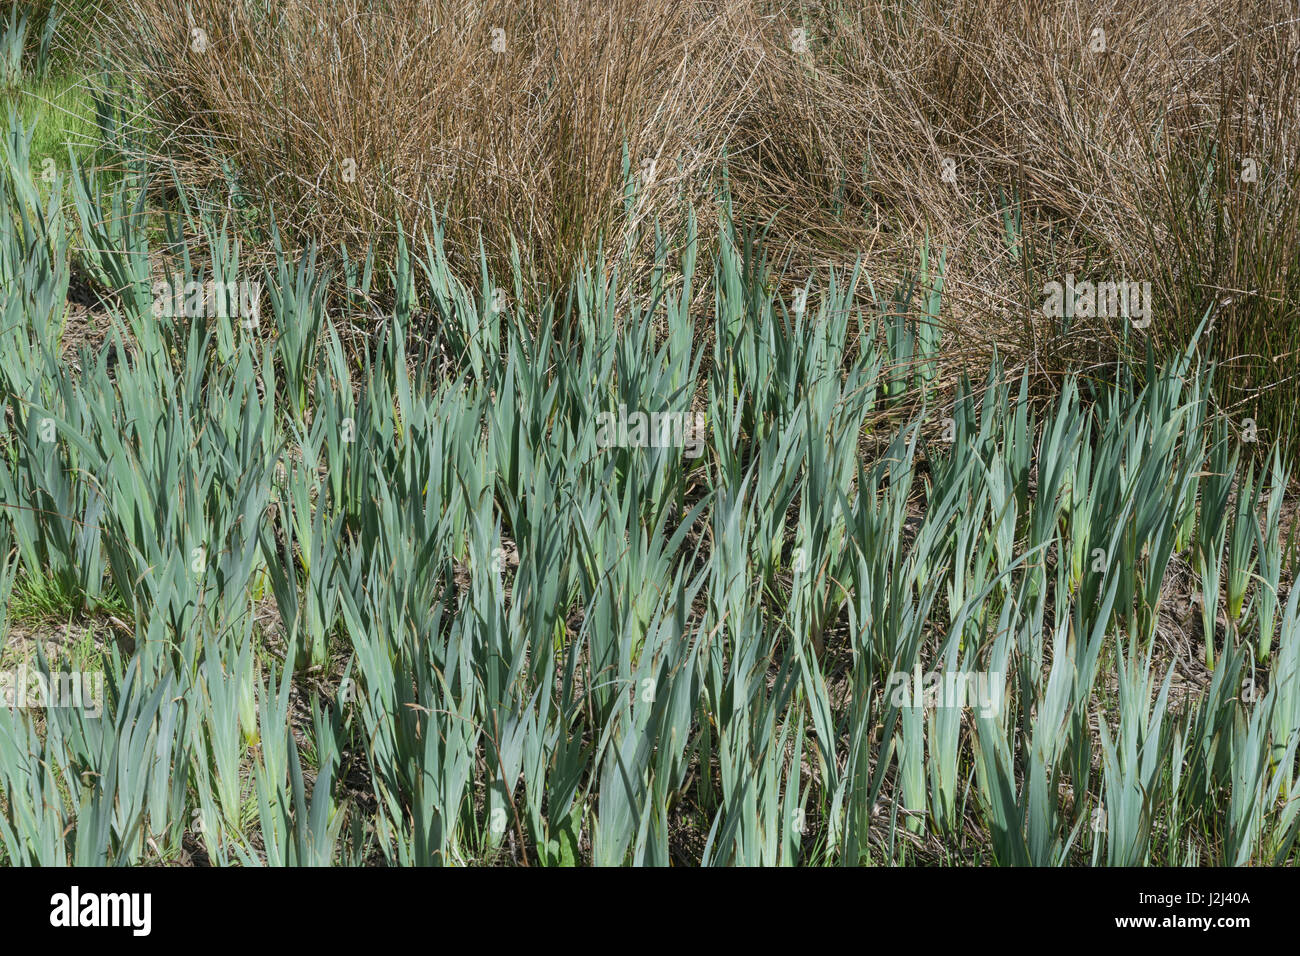 Early spring growth of the Yellow Iris (Iris pseudacorus). A plant that likes moist and wet ground / habitats. - Stock Image